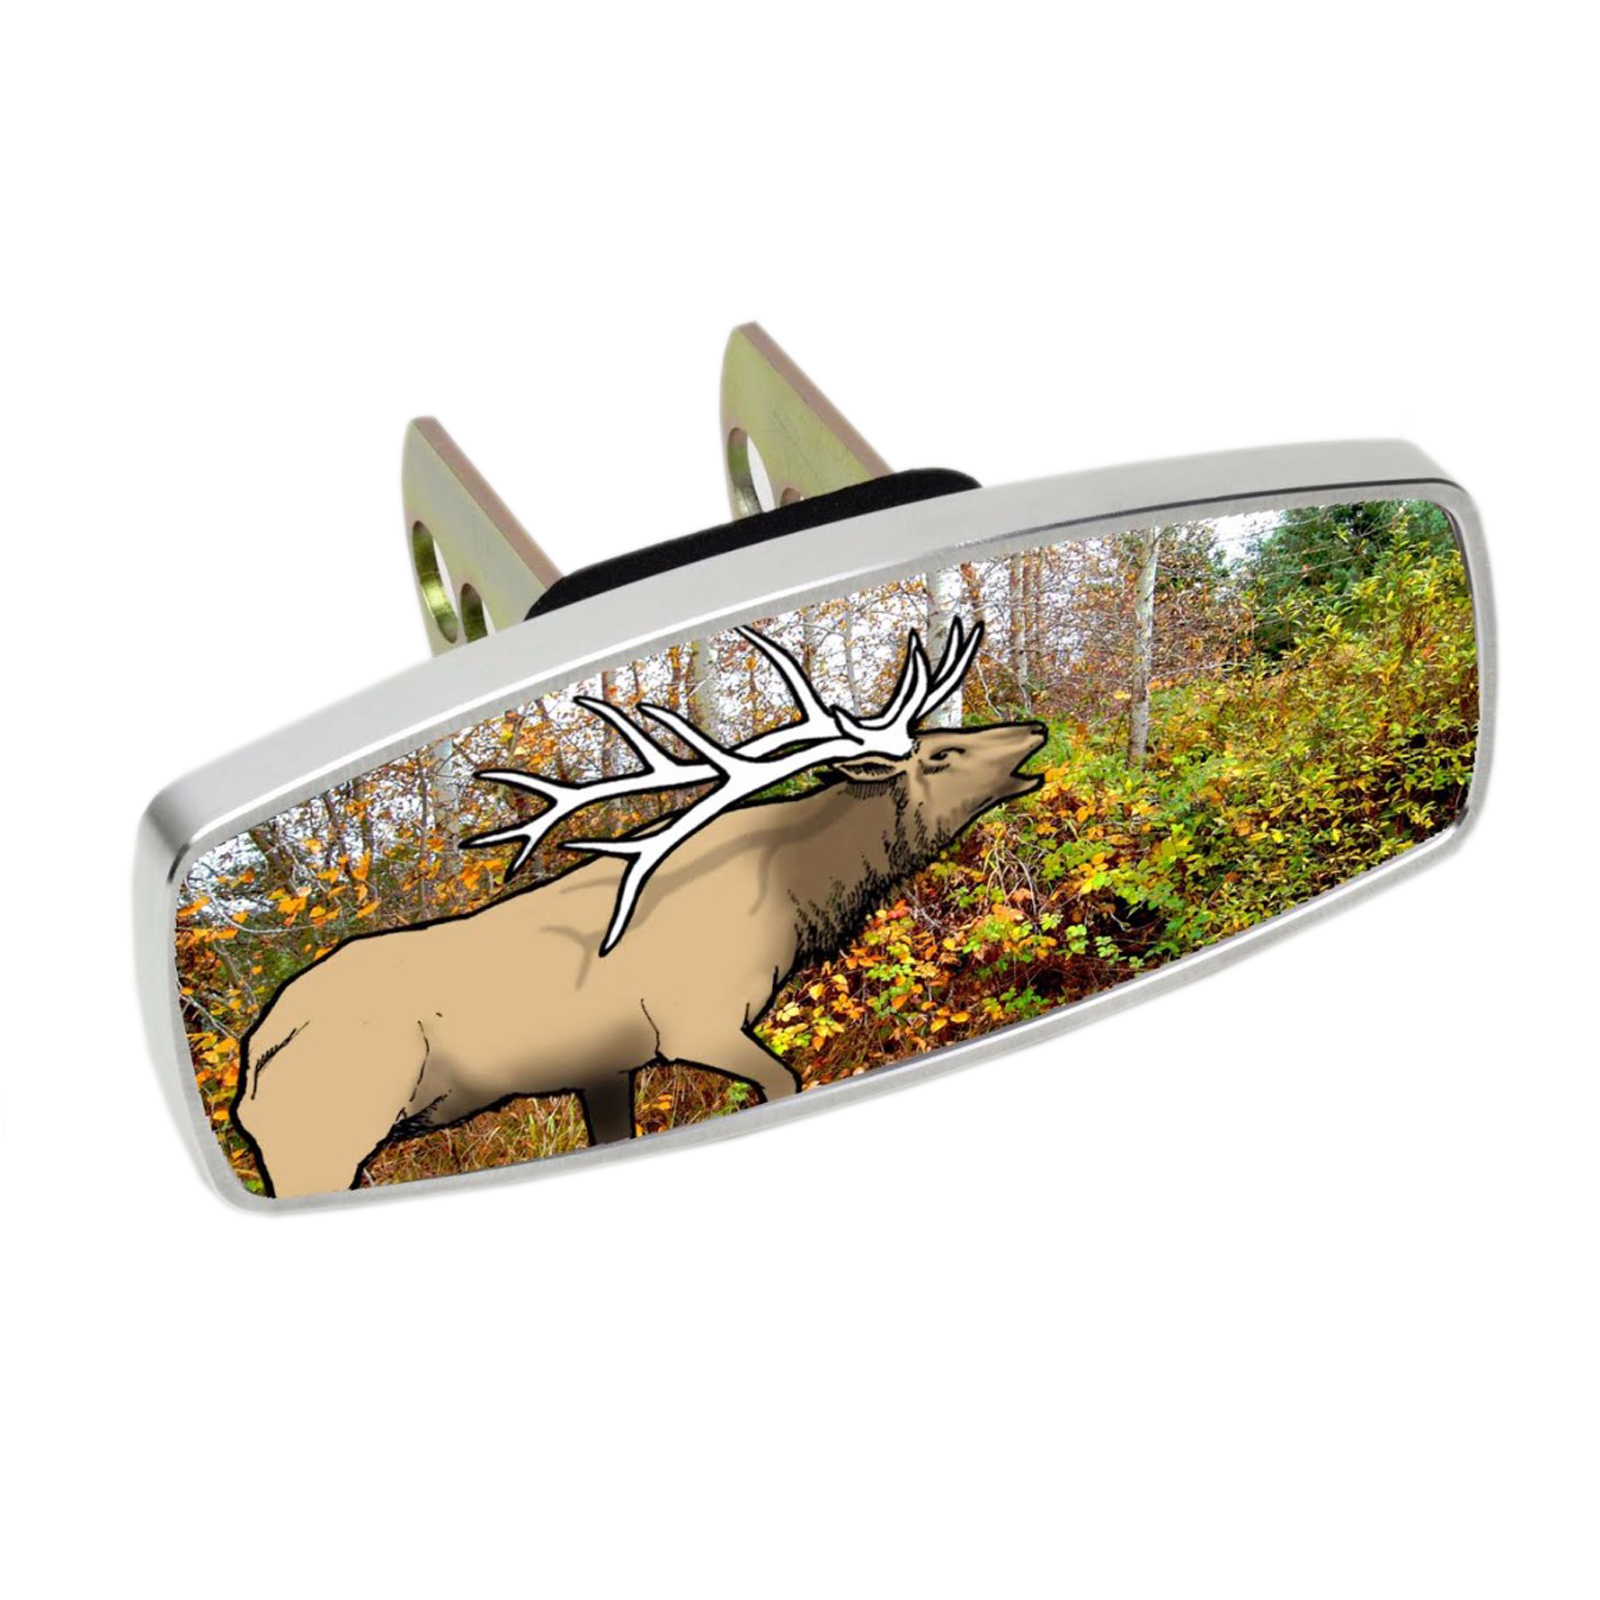 Heininger HitchMate Premier Series Hitch Cap Cover - Elk